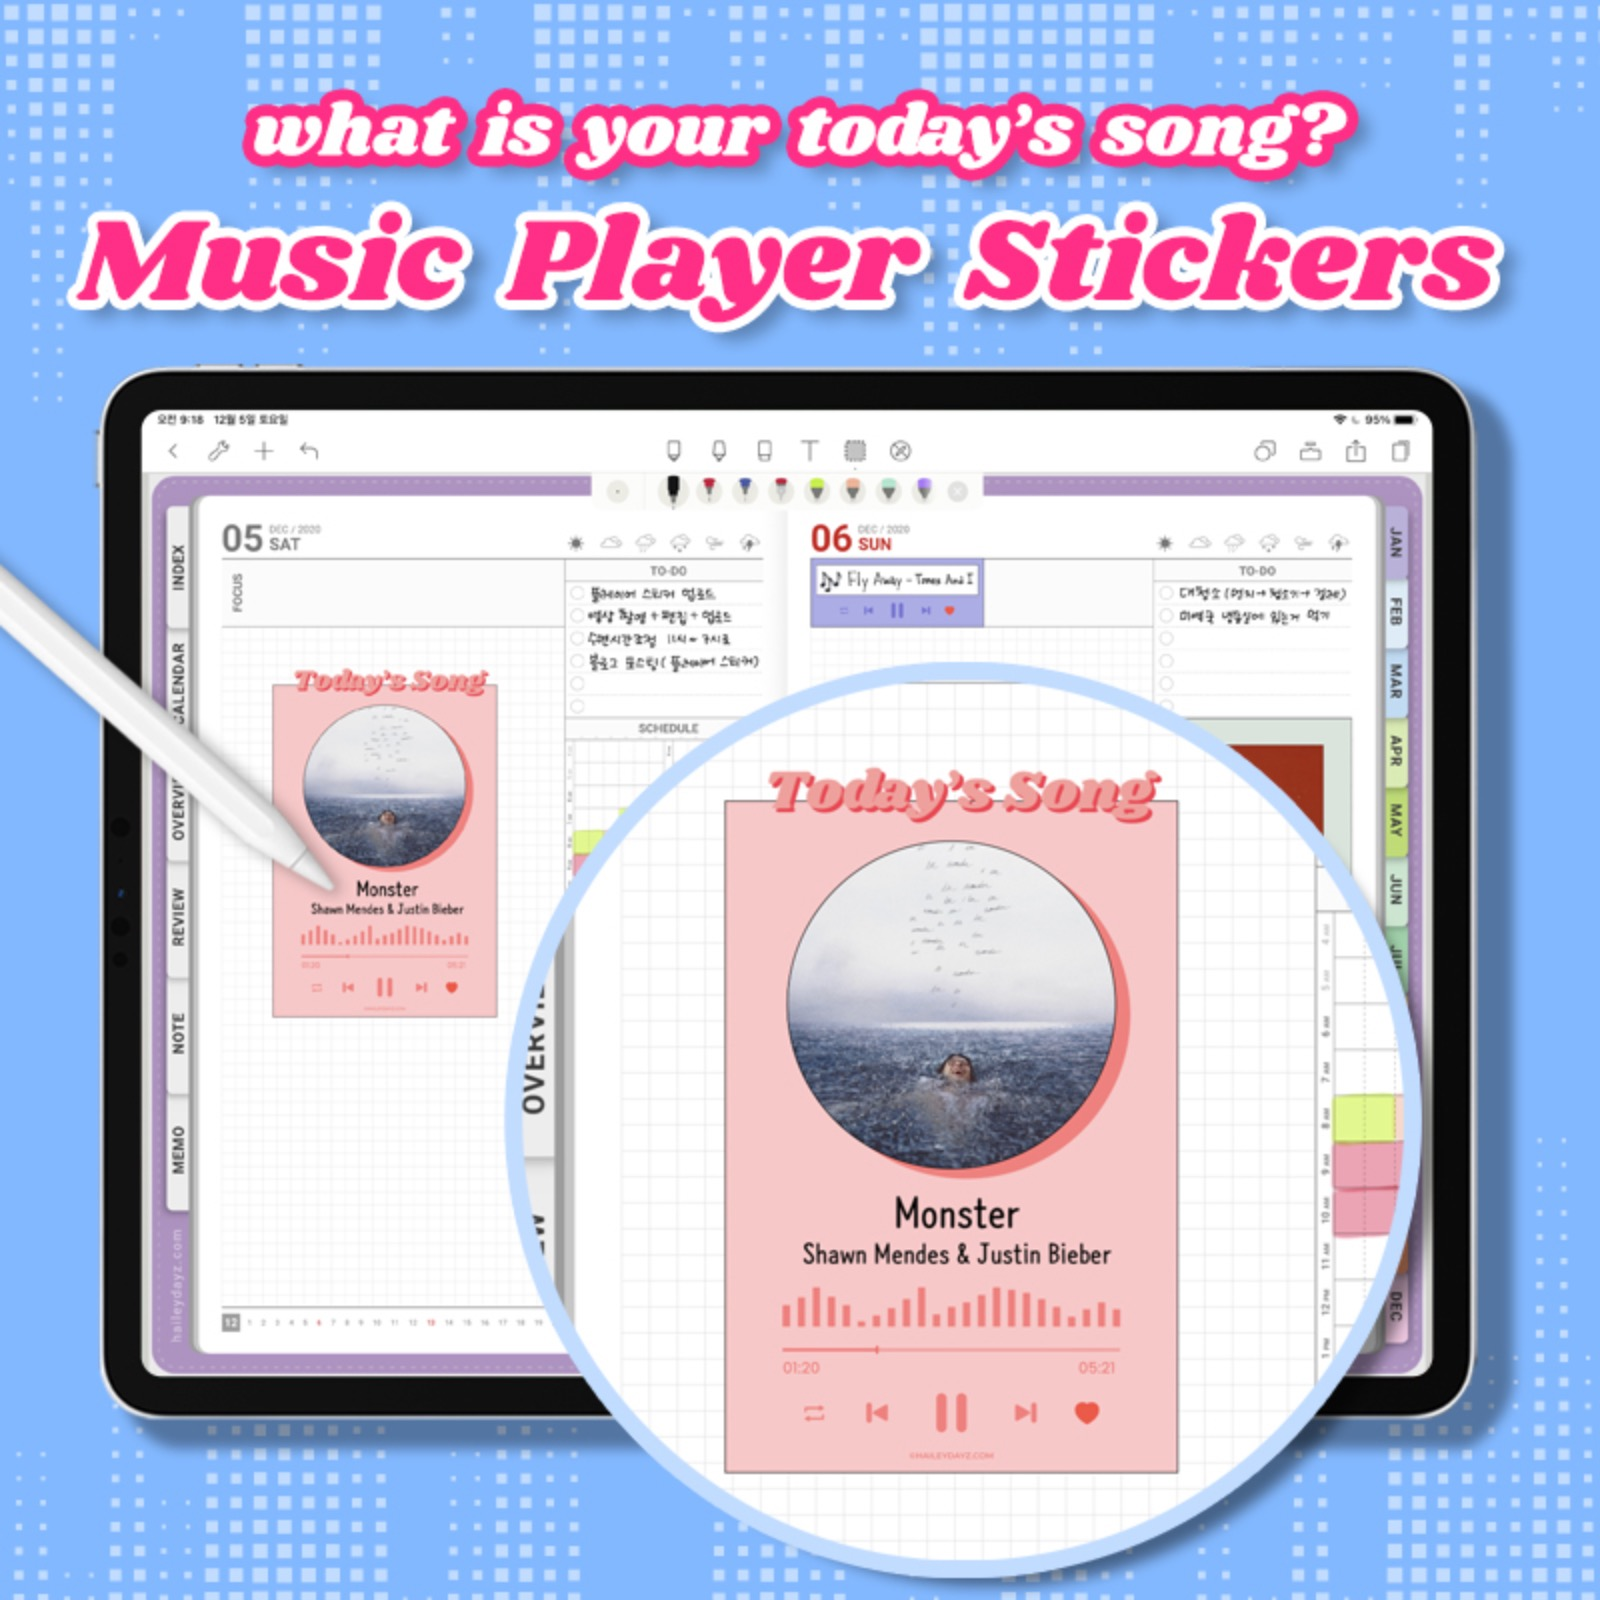 Music player stickers